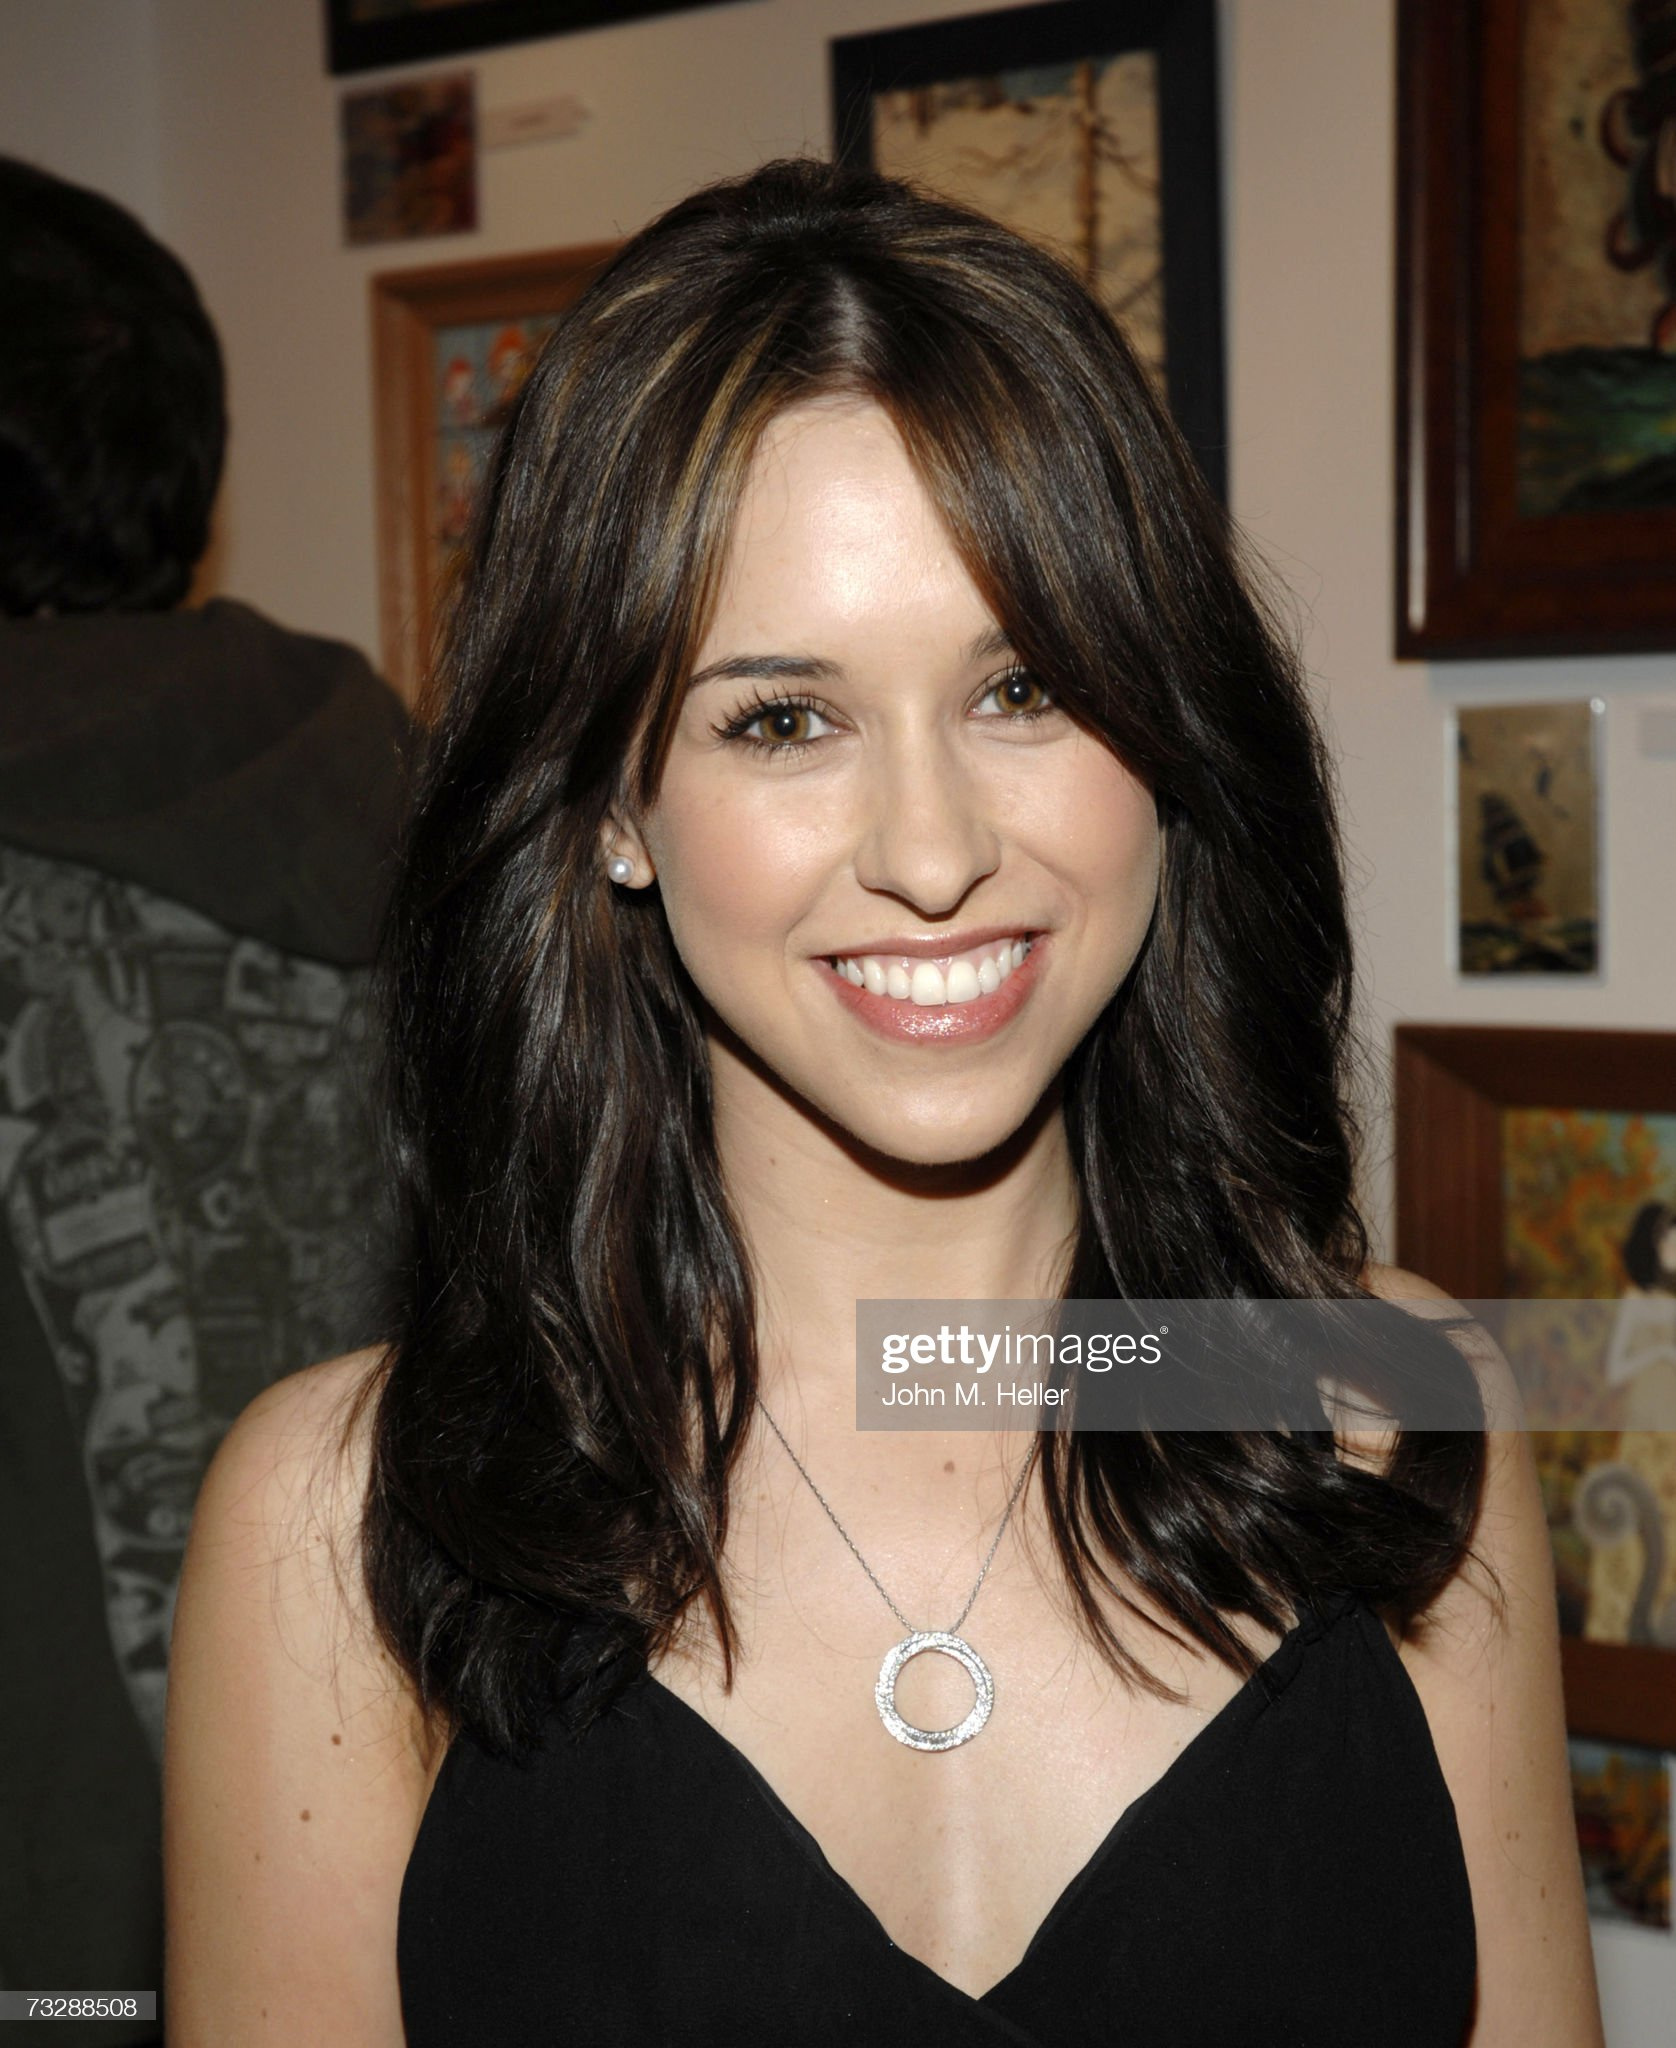 DEBATE sobre guapura de famosos y famosas - Página 3 Lacey-chabert-attends-the-charity-by-numbers-a-benefit-for-the-for-picture-id73288508?s=2048x2048